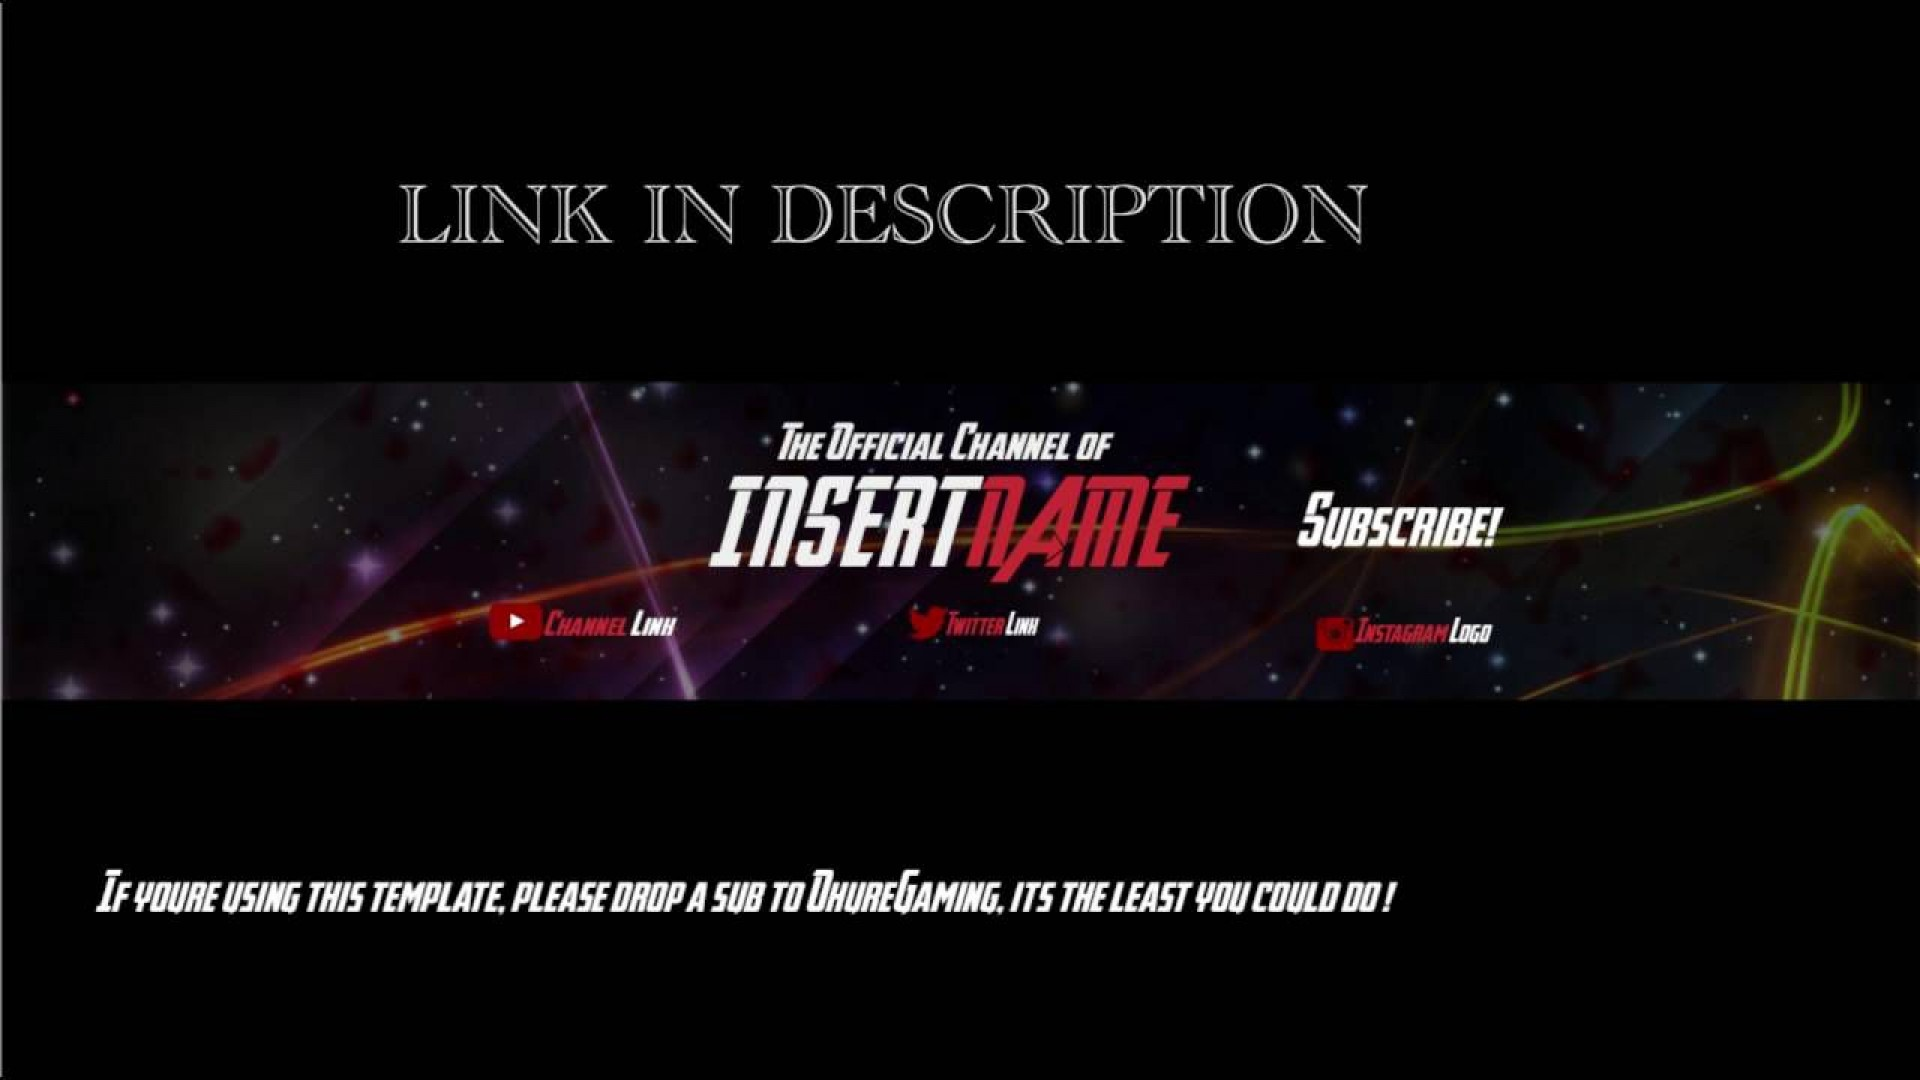 004 Awful Youtube Channel Art Template Photoshop Download Concept 1920